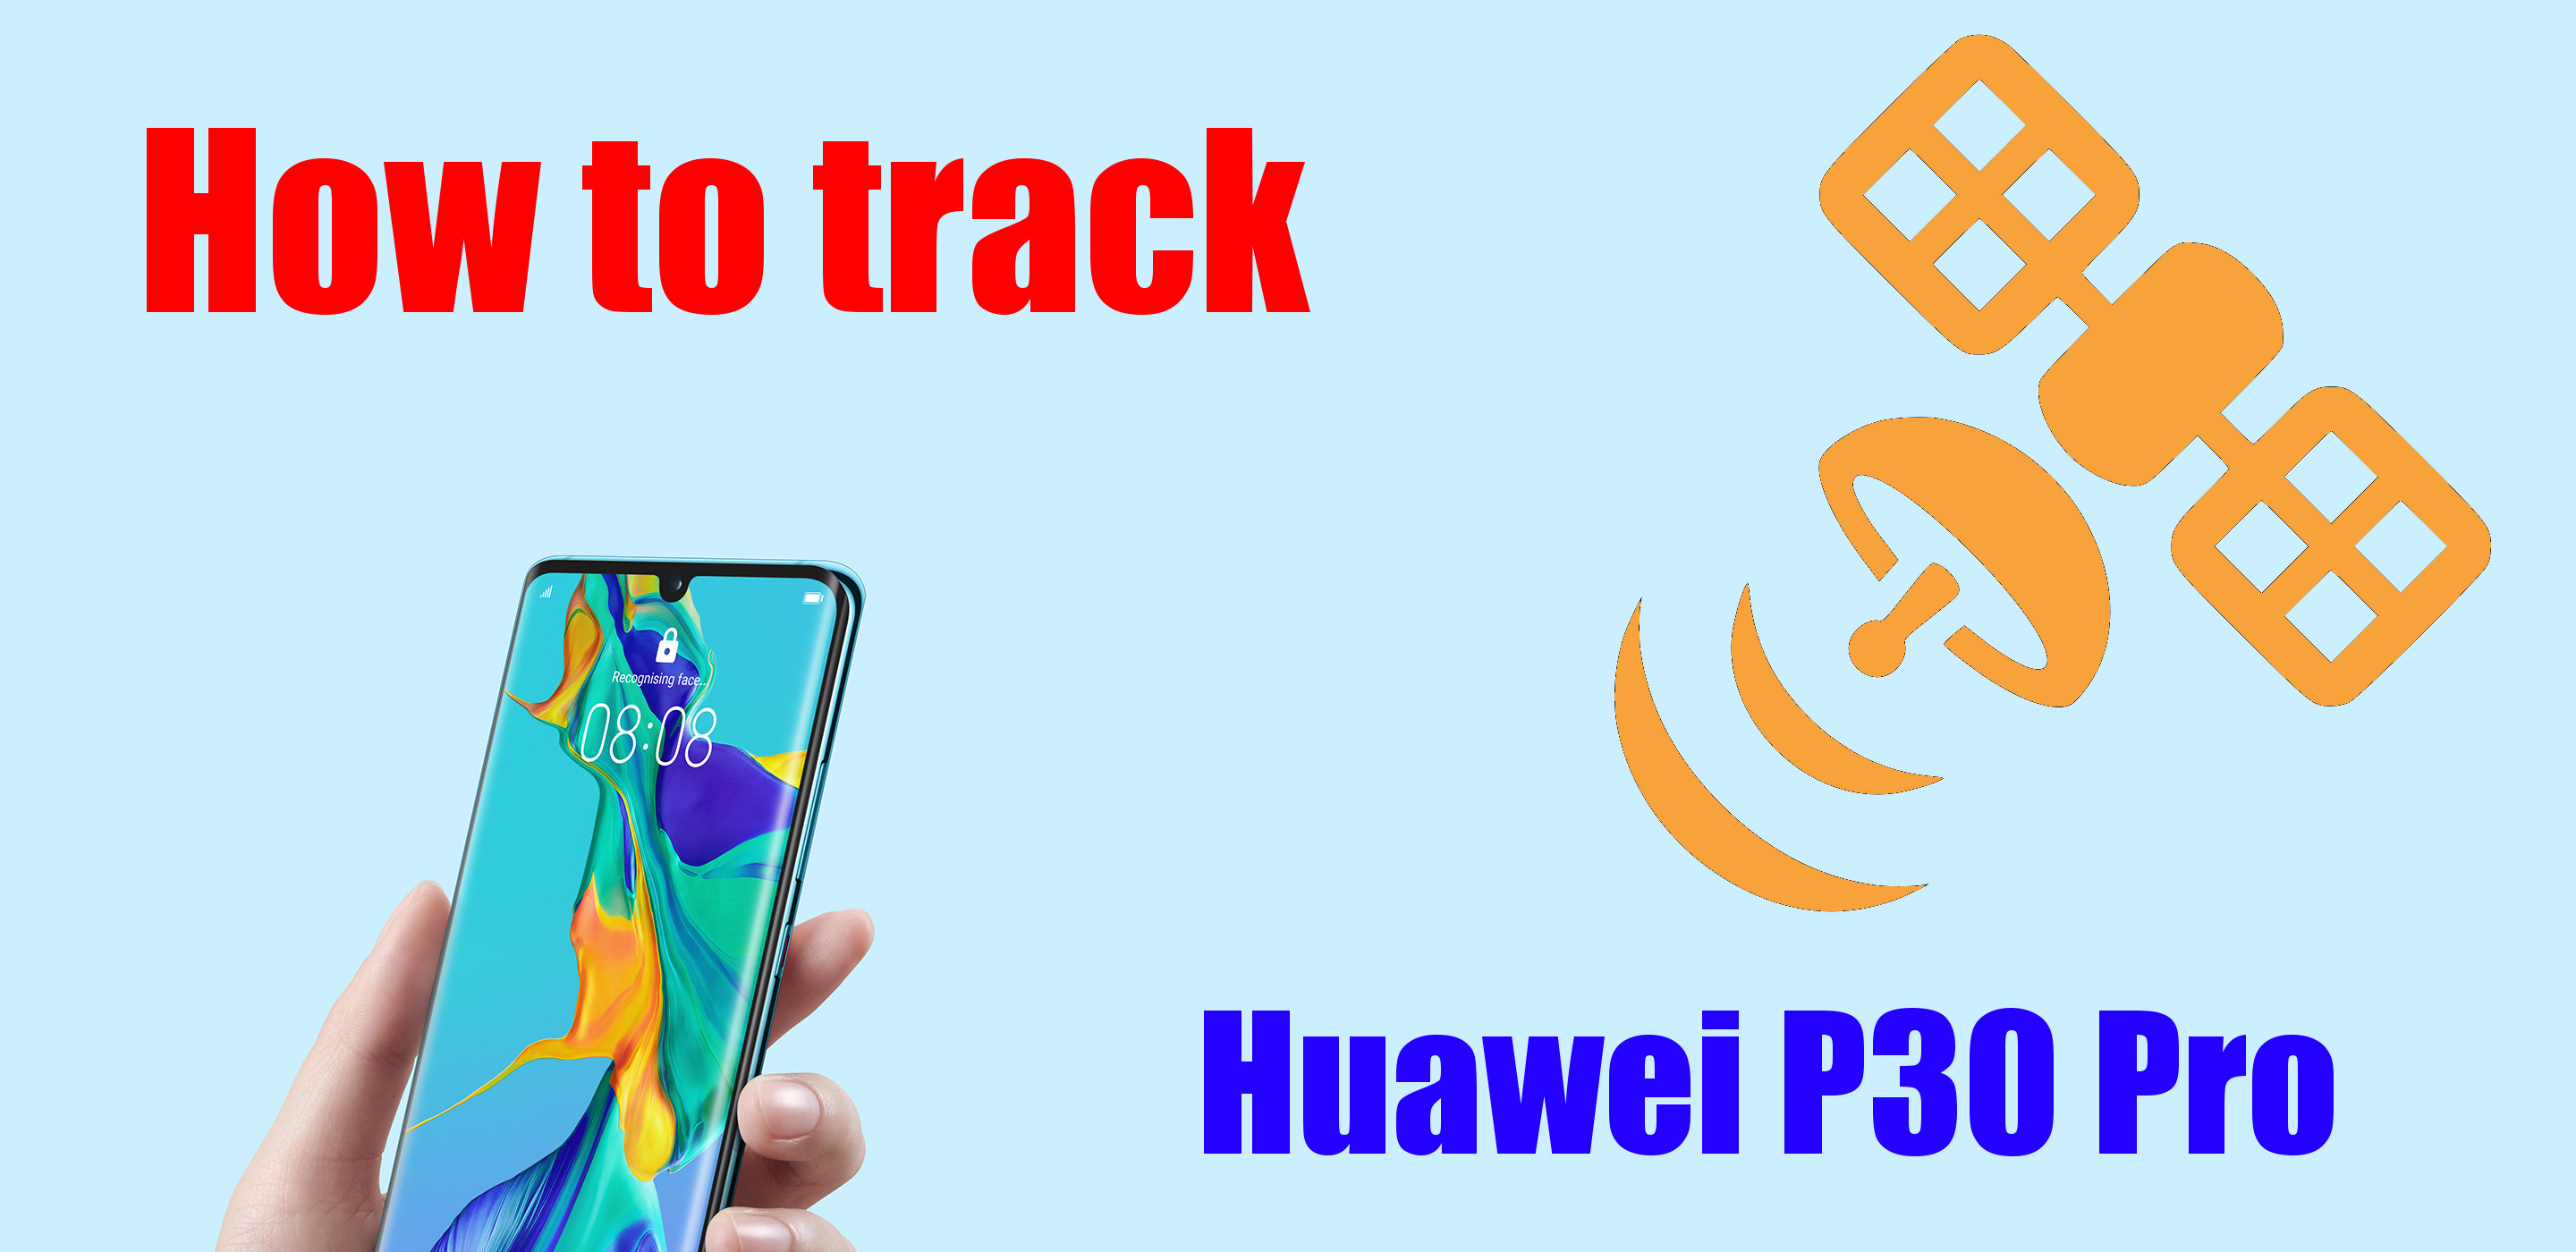 Huawei P30 Pro real time tracking explained